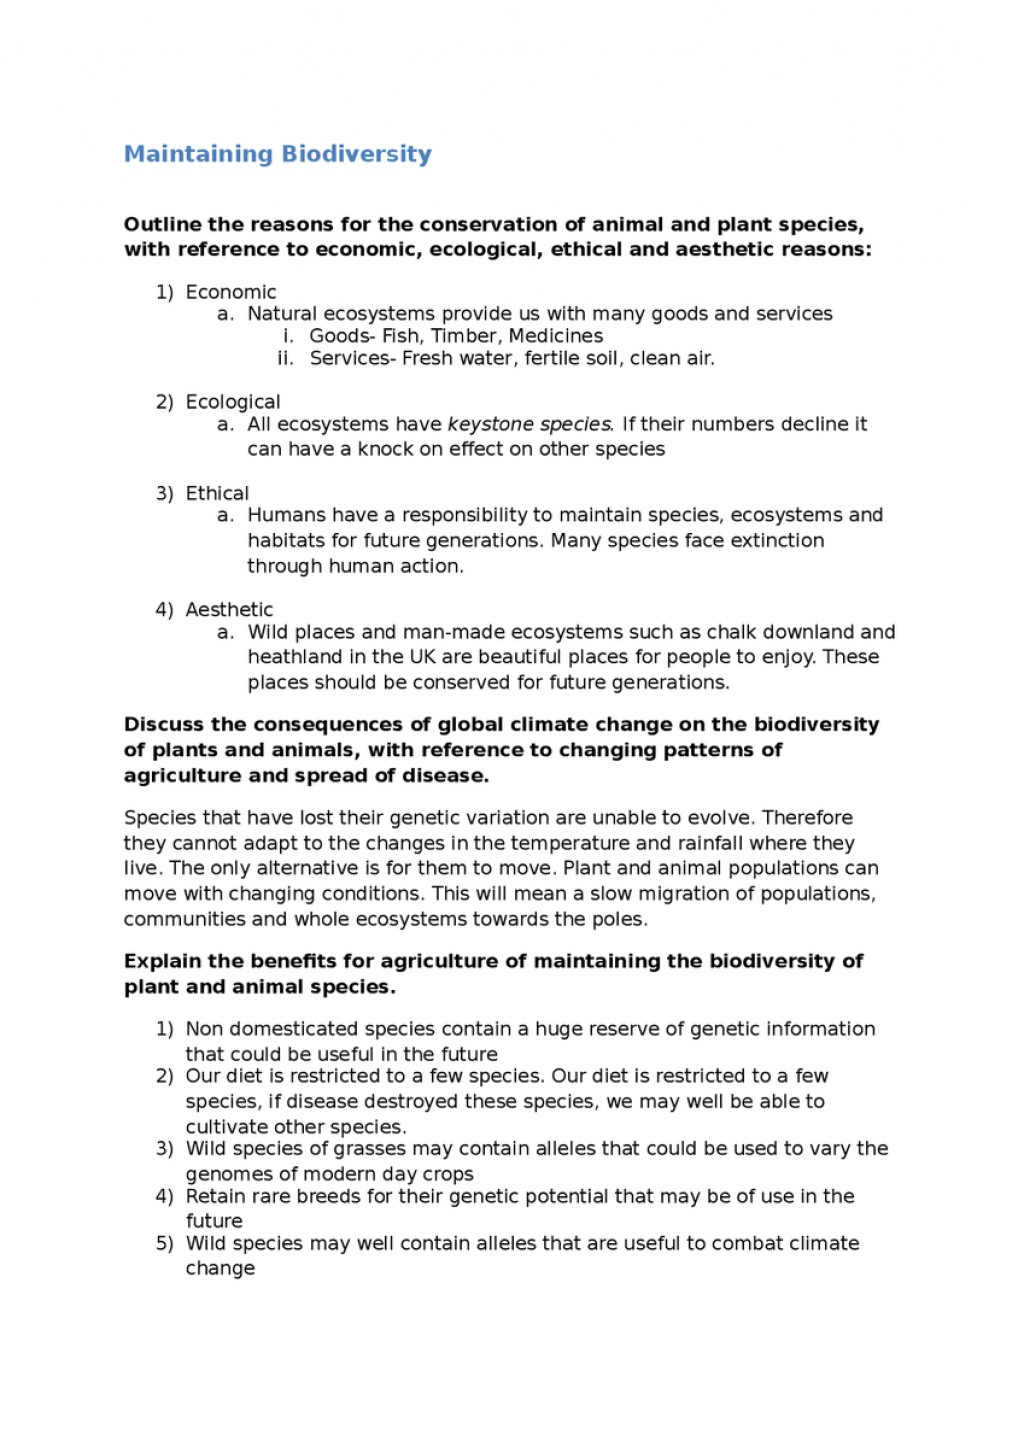 007 Pay For Essays To Write Popular Persuasive Essay Online Vision Professional Paid My Uk Someone Canada Reddit Paper University Get Dreaded Cheap Magazines That Large